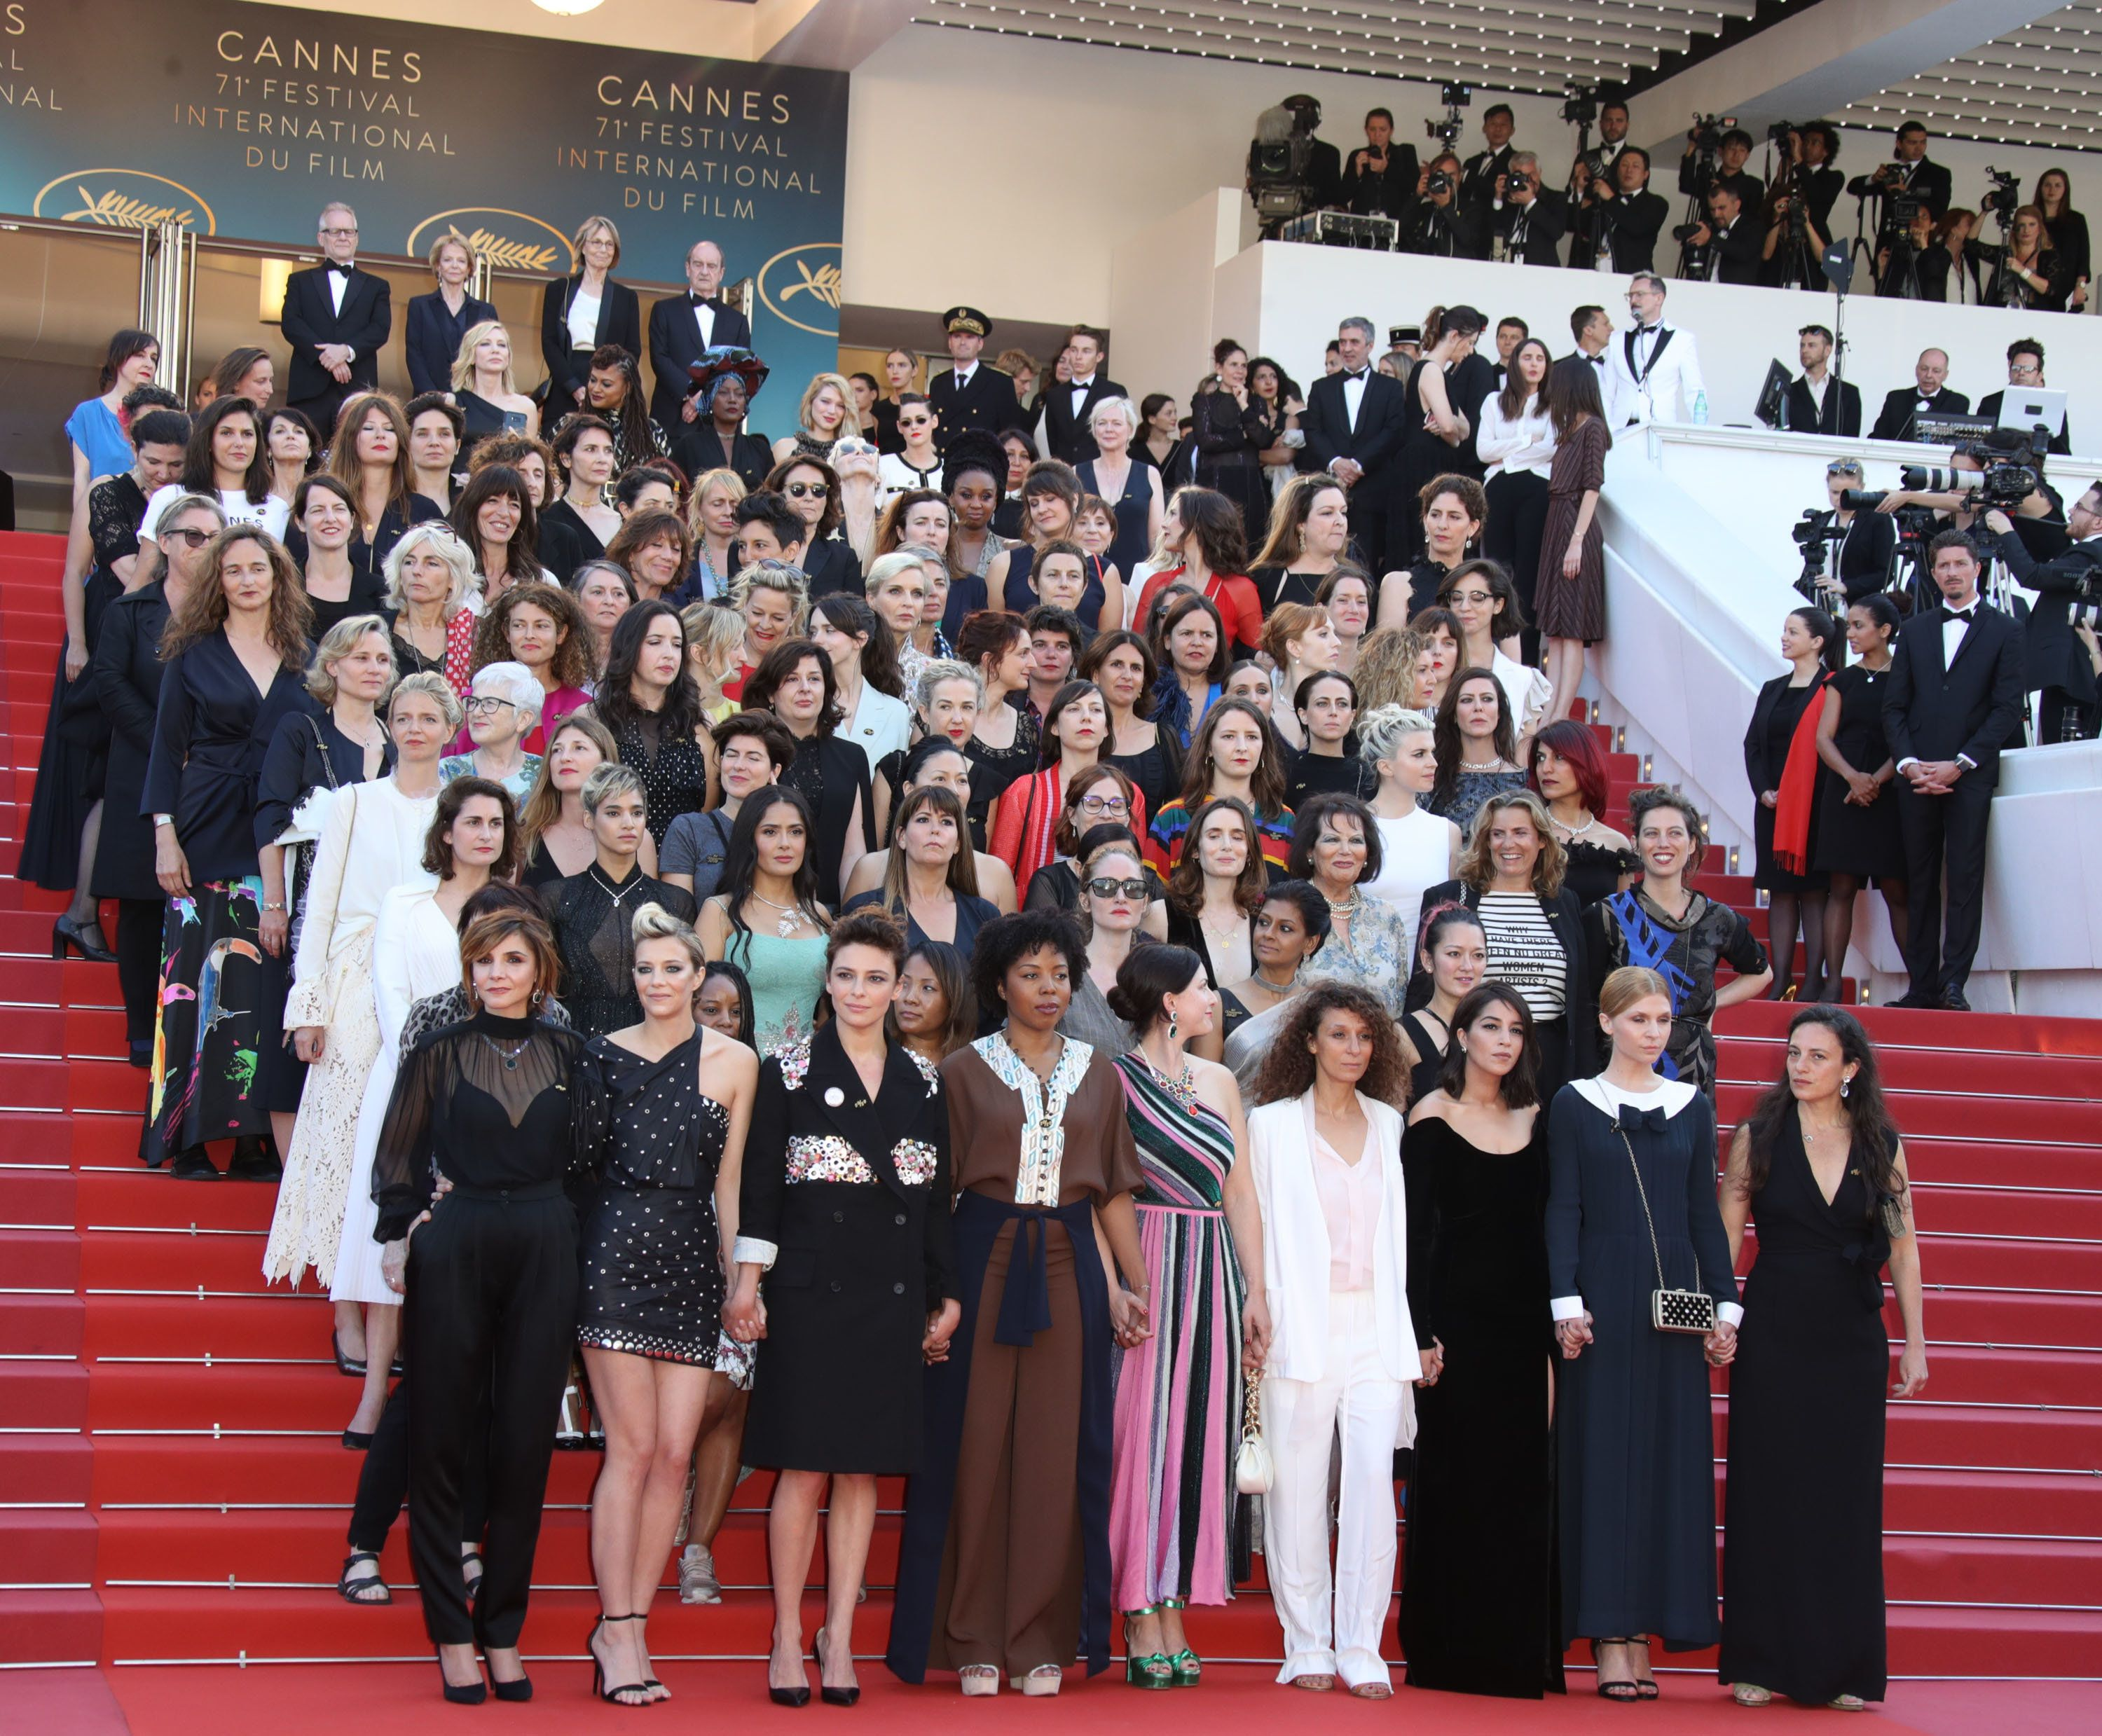 The 82 women, led by Cate Blanchett, stand in protest on the steps of the Palais des Festivals at Cannes on Sa